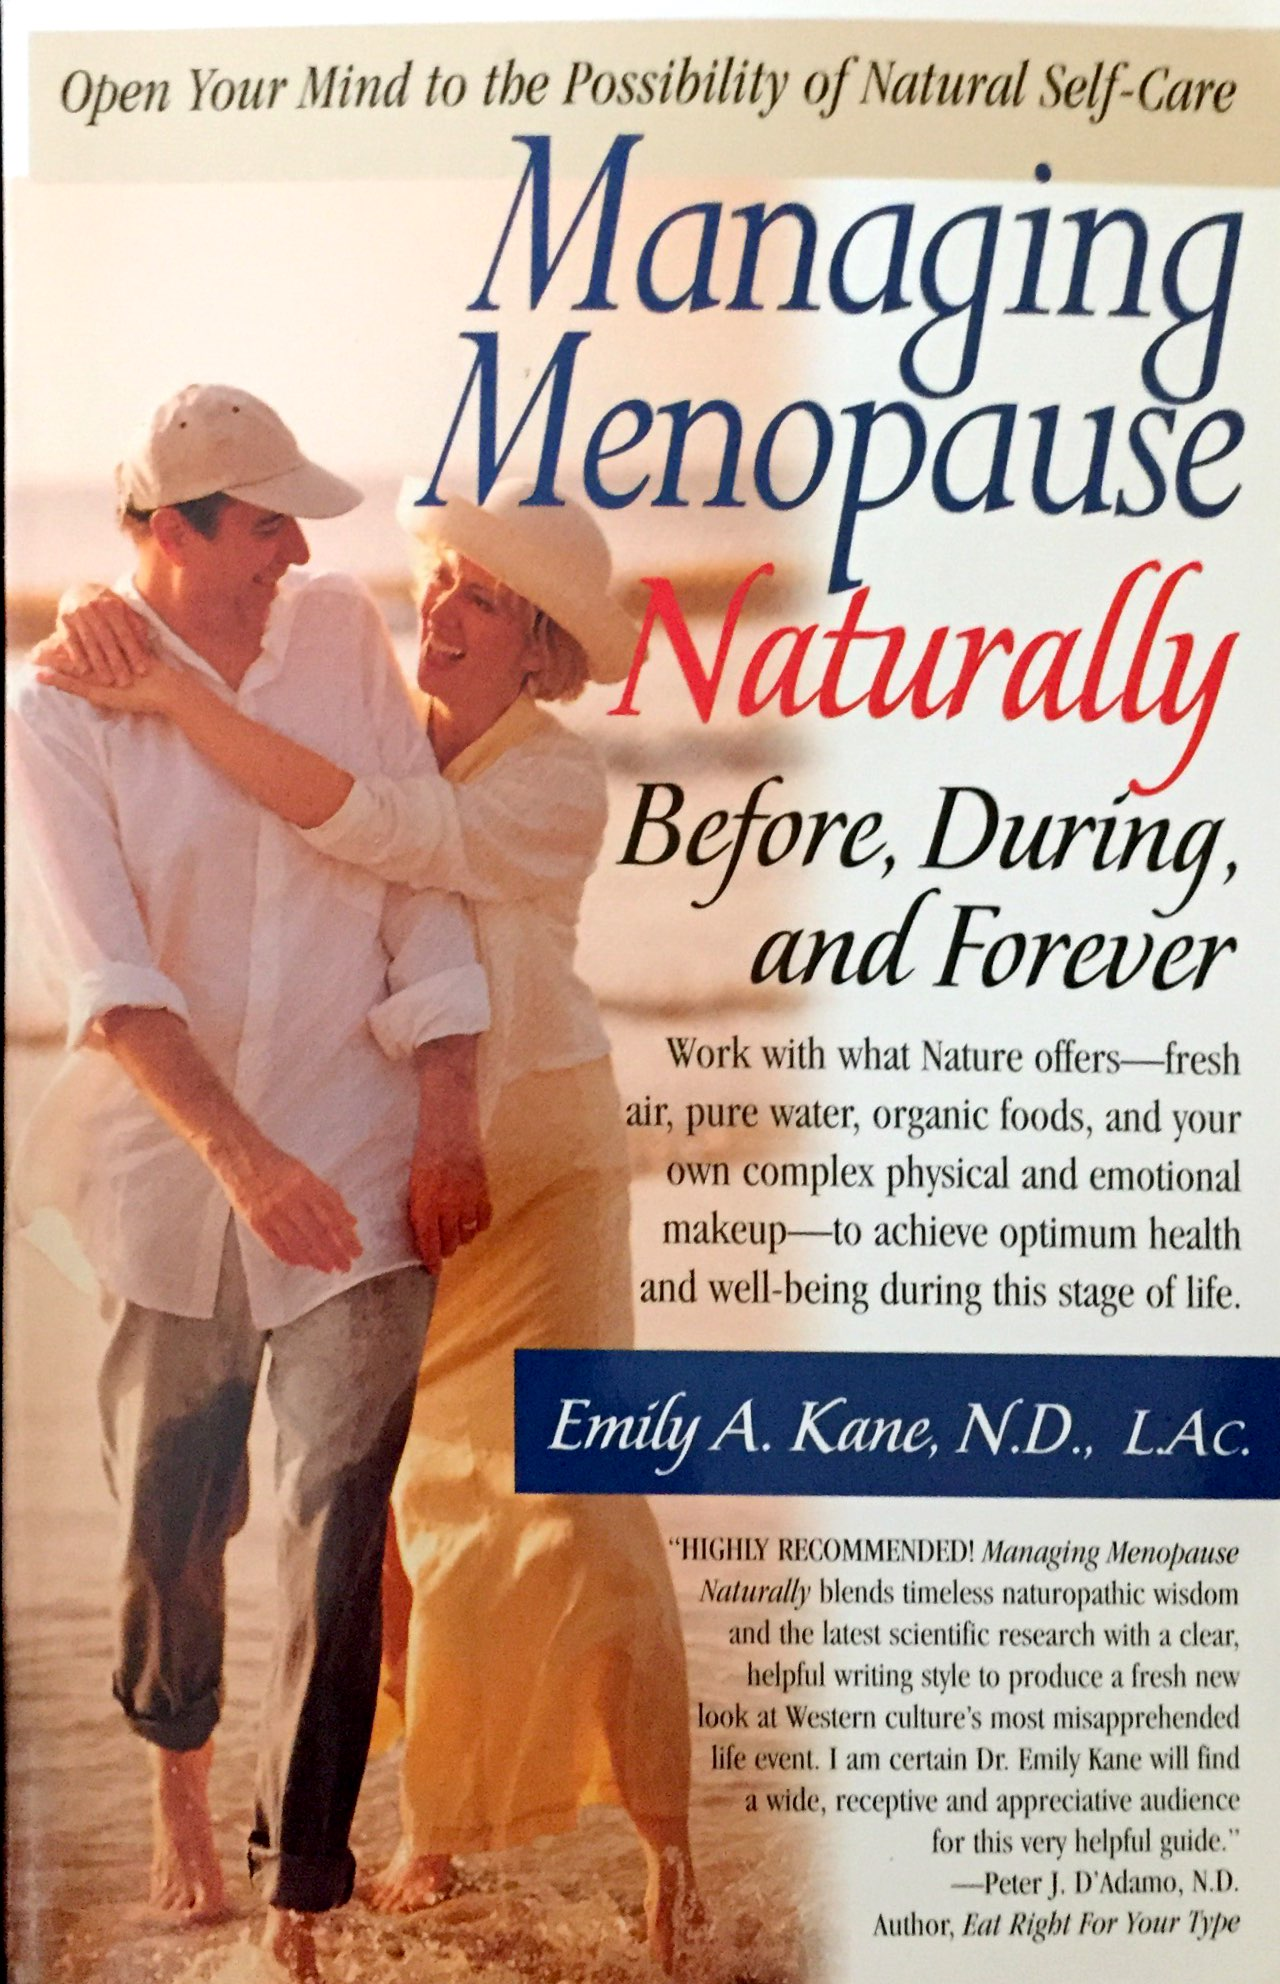 Managing Menopause Naturally Before, During, And Forever